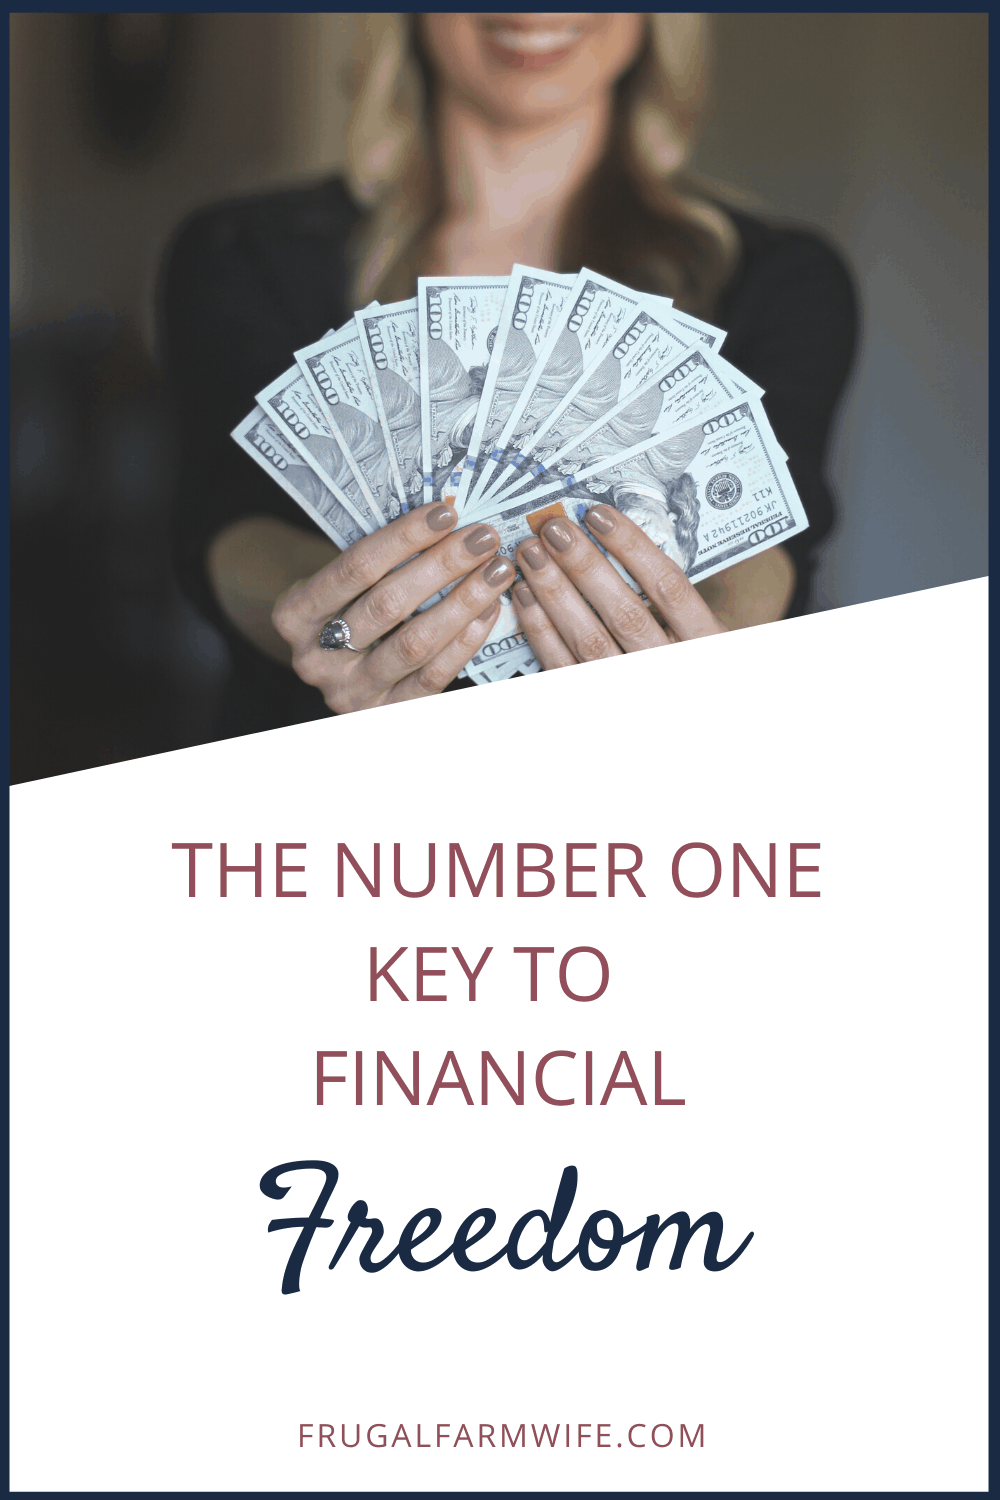 the key to financial freedom isn't what you think - and anybody can have it!